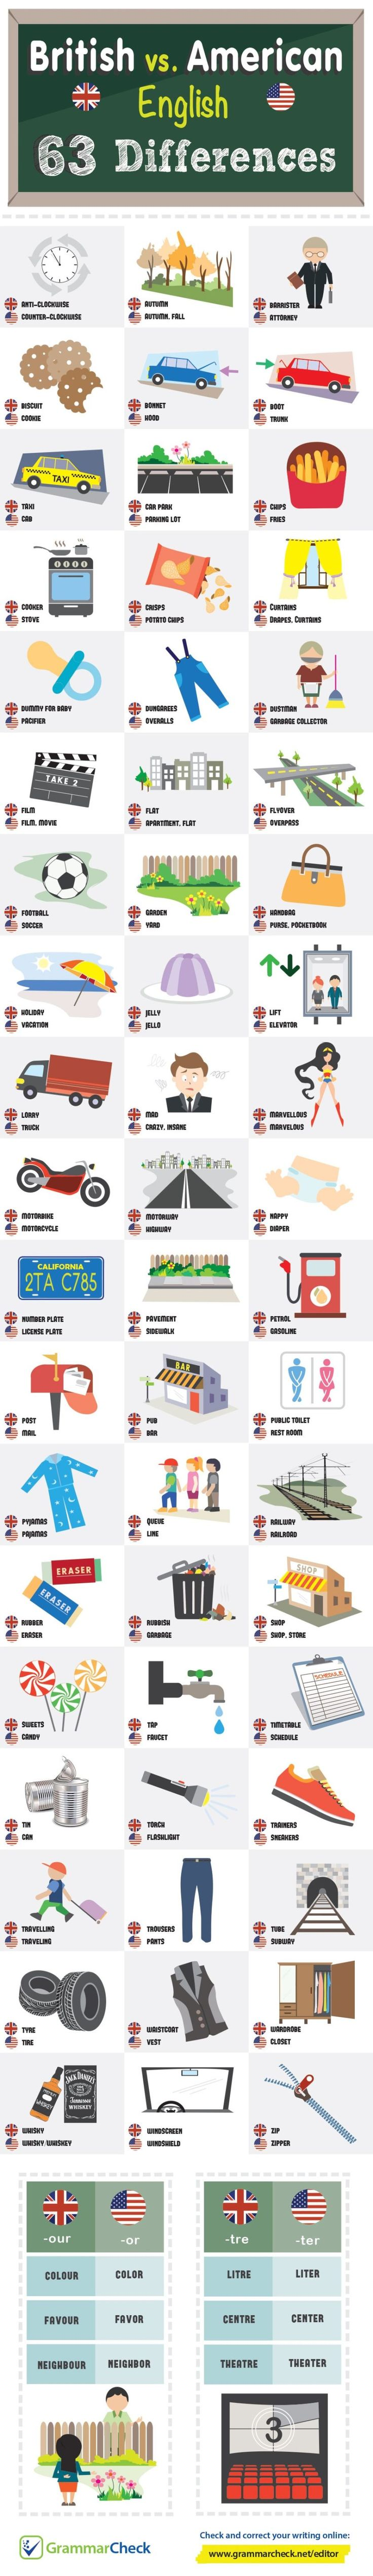 60+ everyday words that are different in British and American English